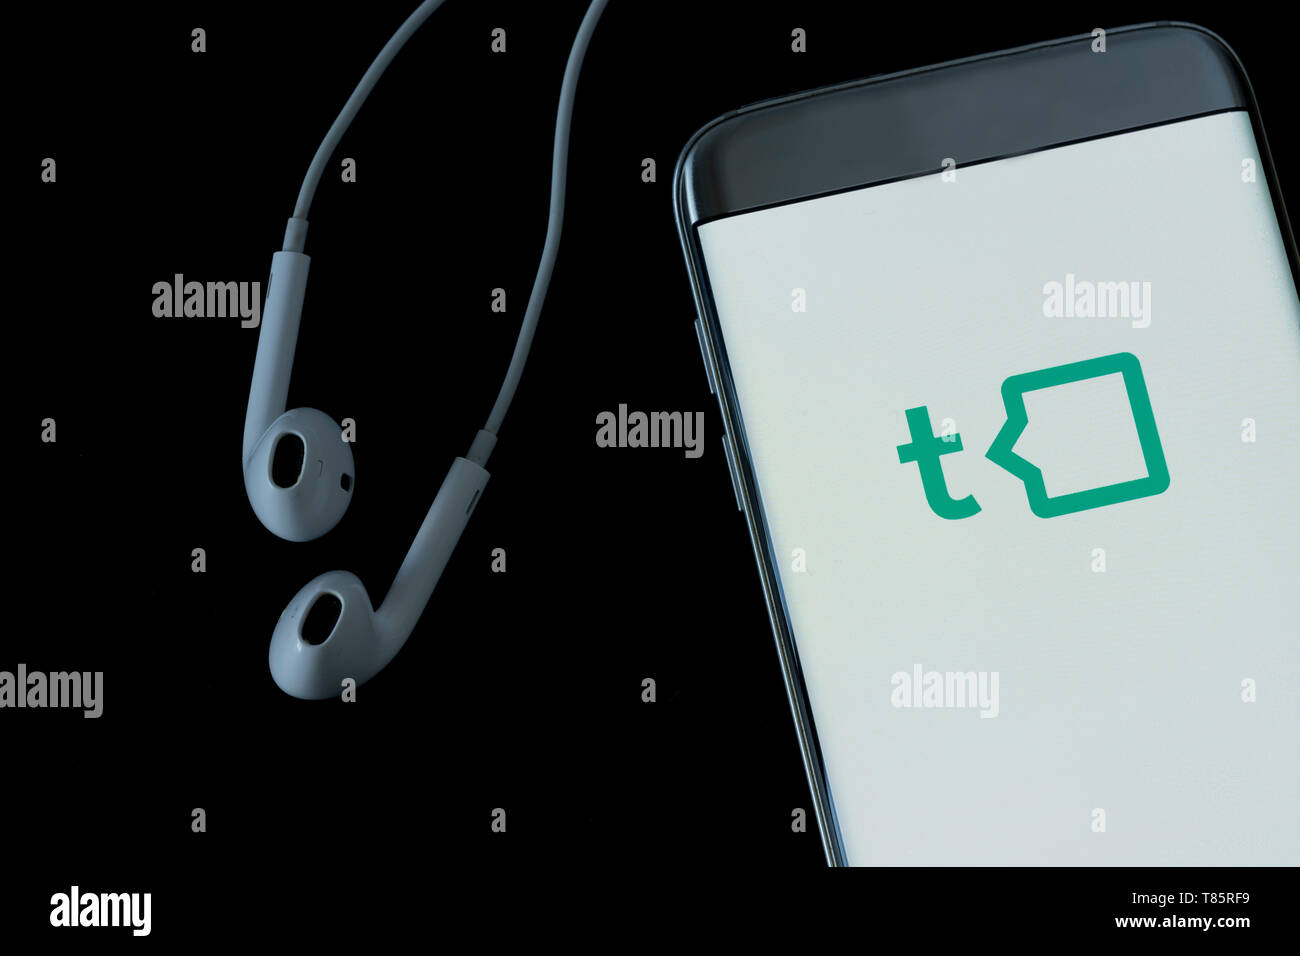 Image of Talkspace app on a smartphone on a black background - Stock Image